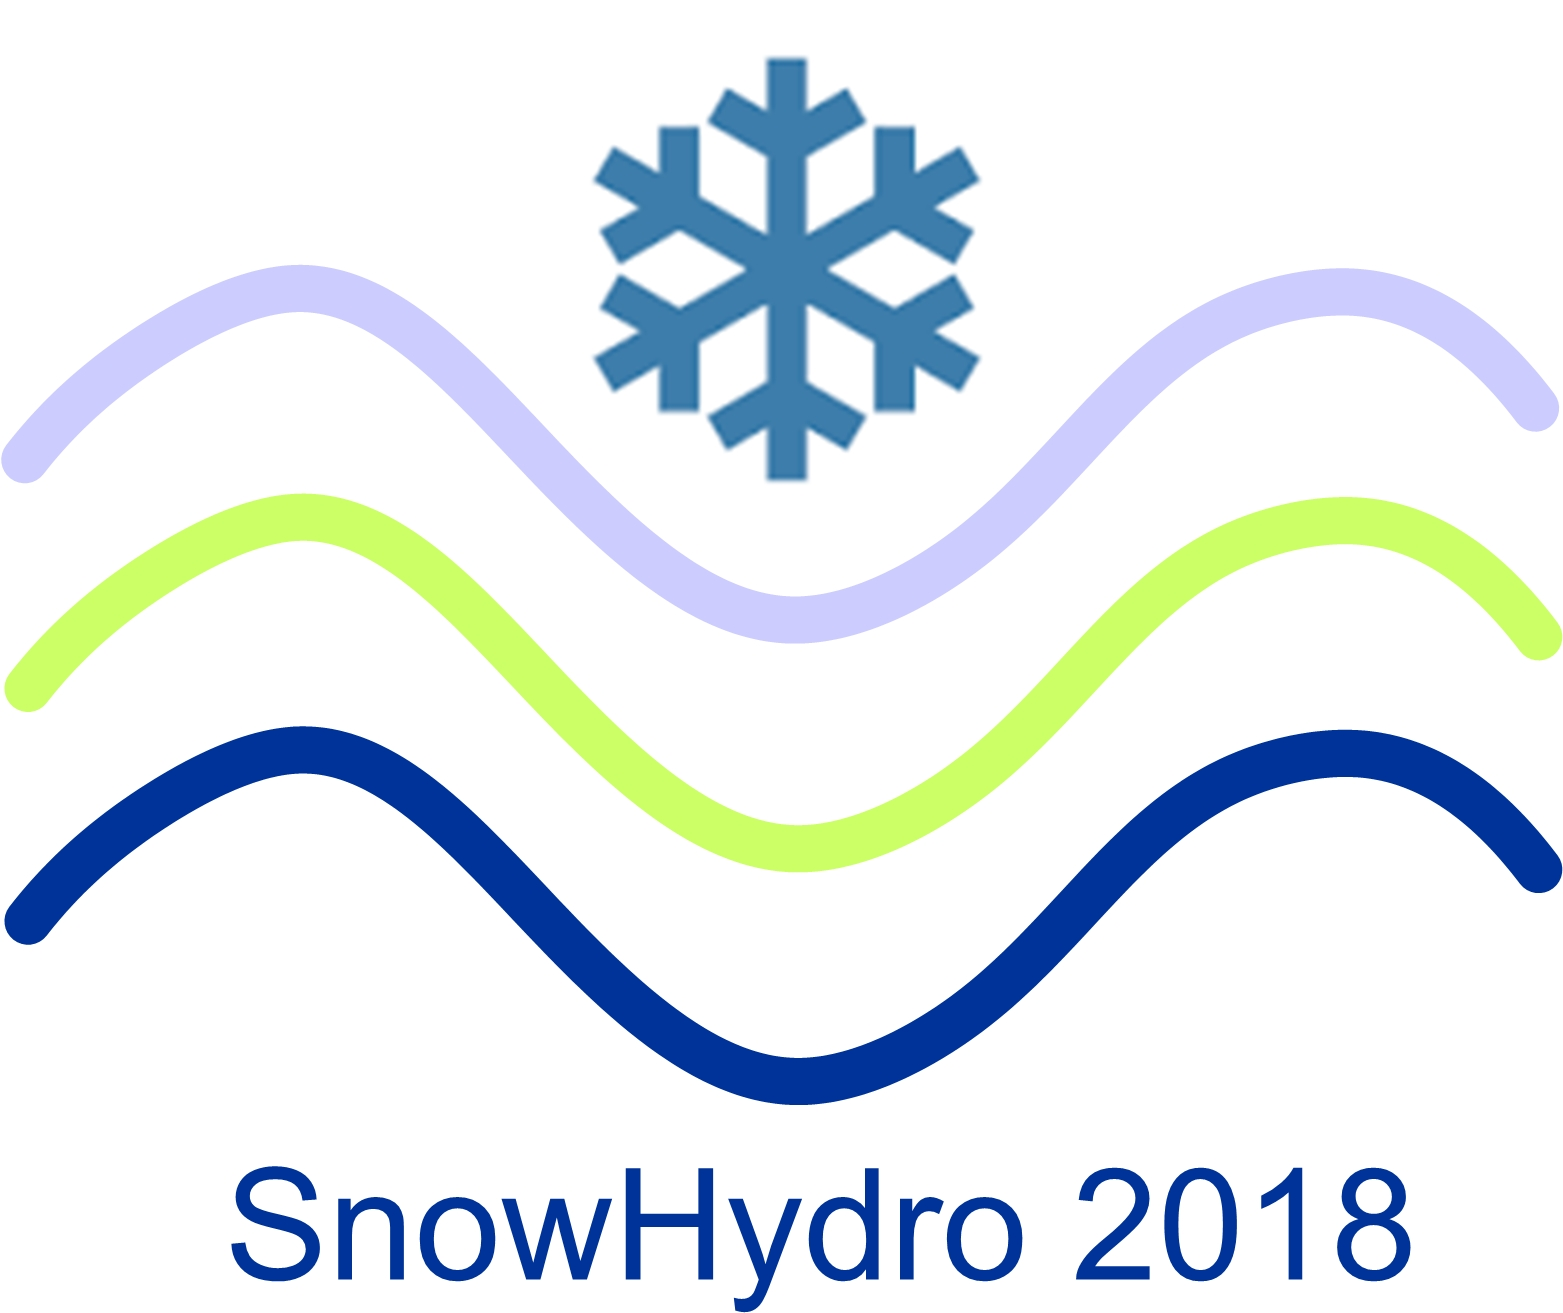 SnowHydro 2018 - International Conference on Snow Hydrology